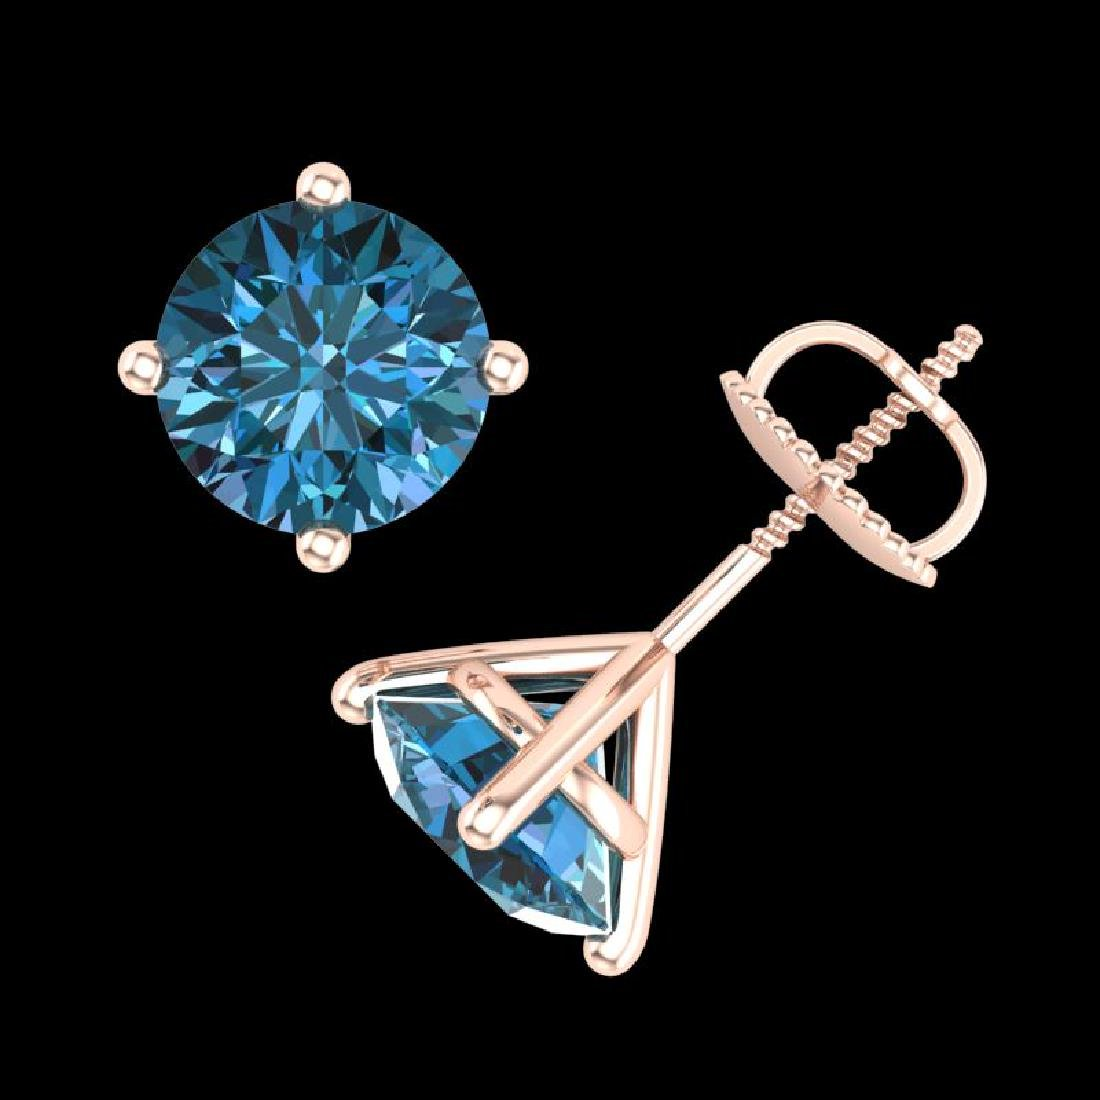 3.01 CTW Fancy Intense Blue Diamond Art Deco Stud - 3